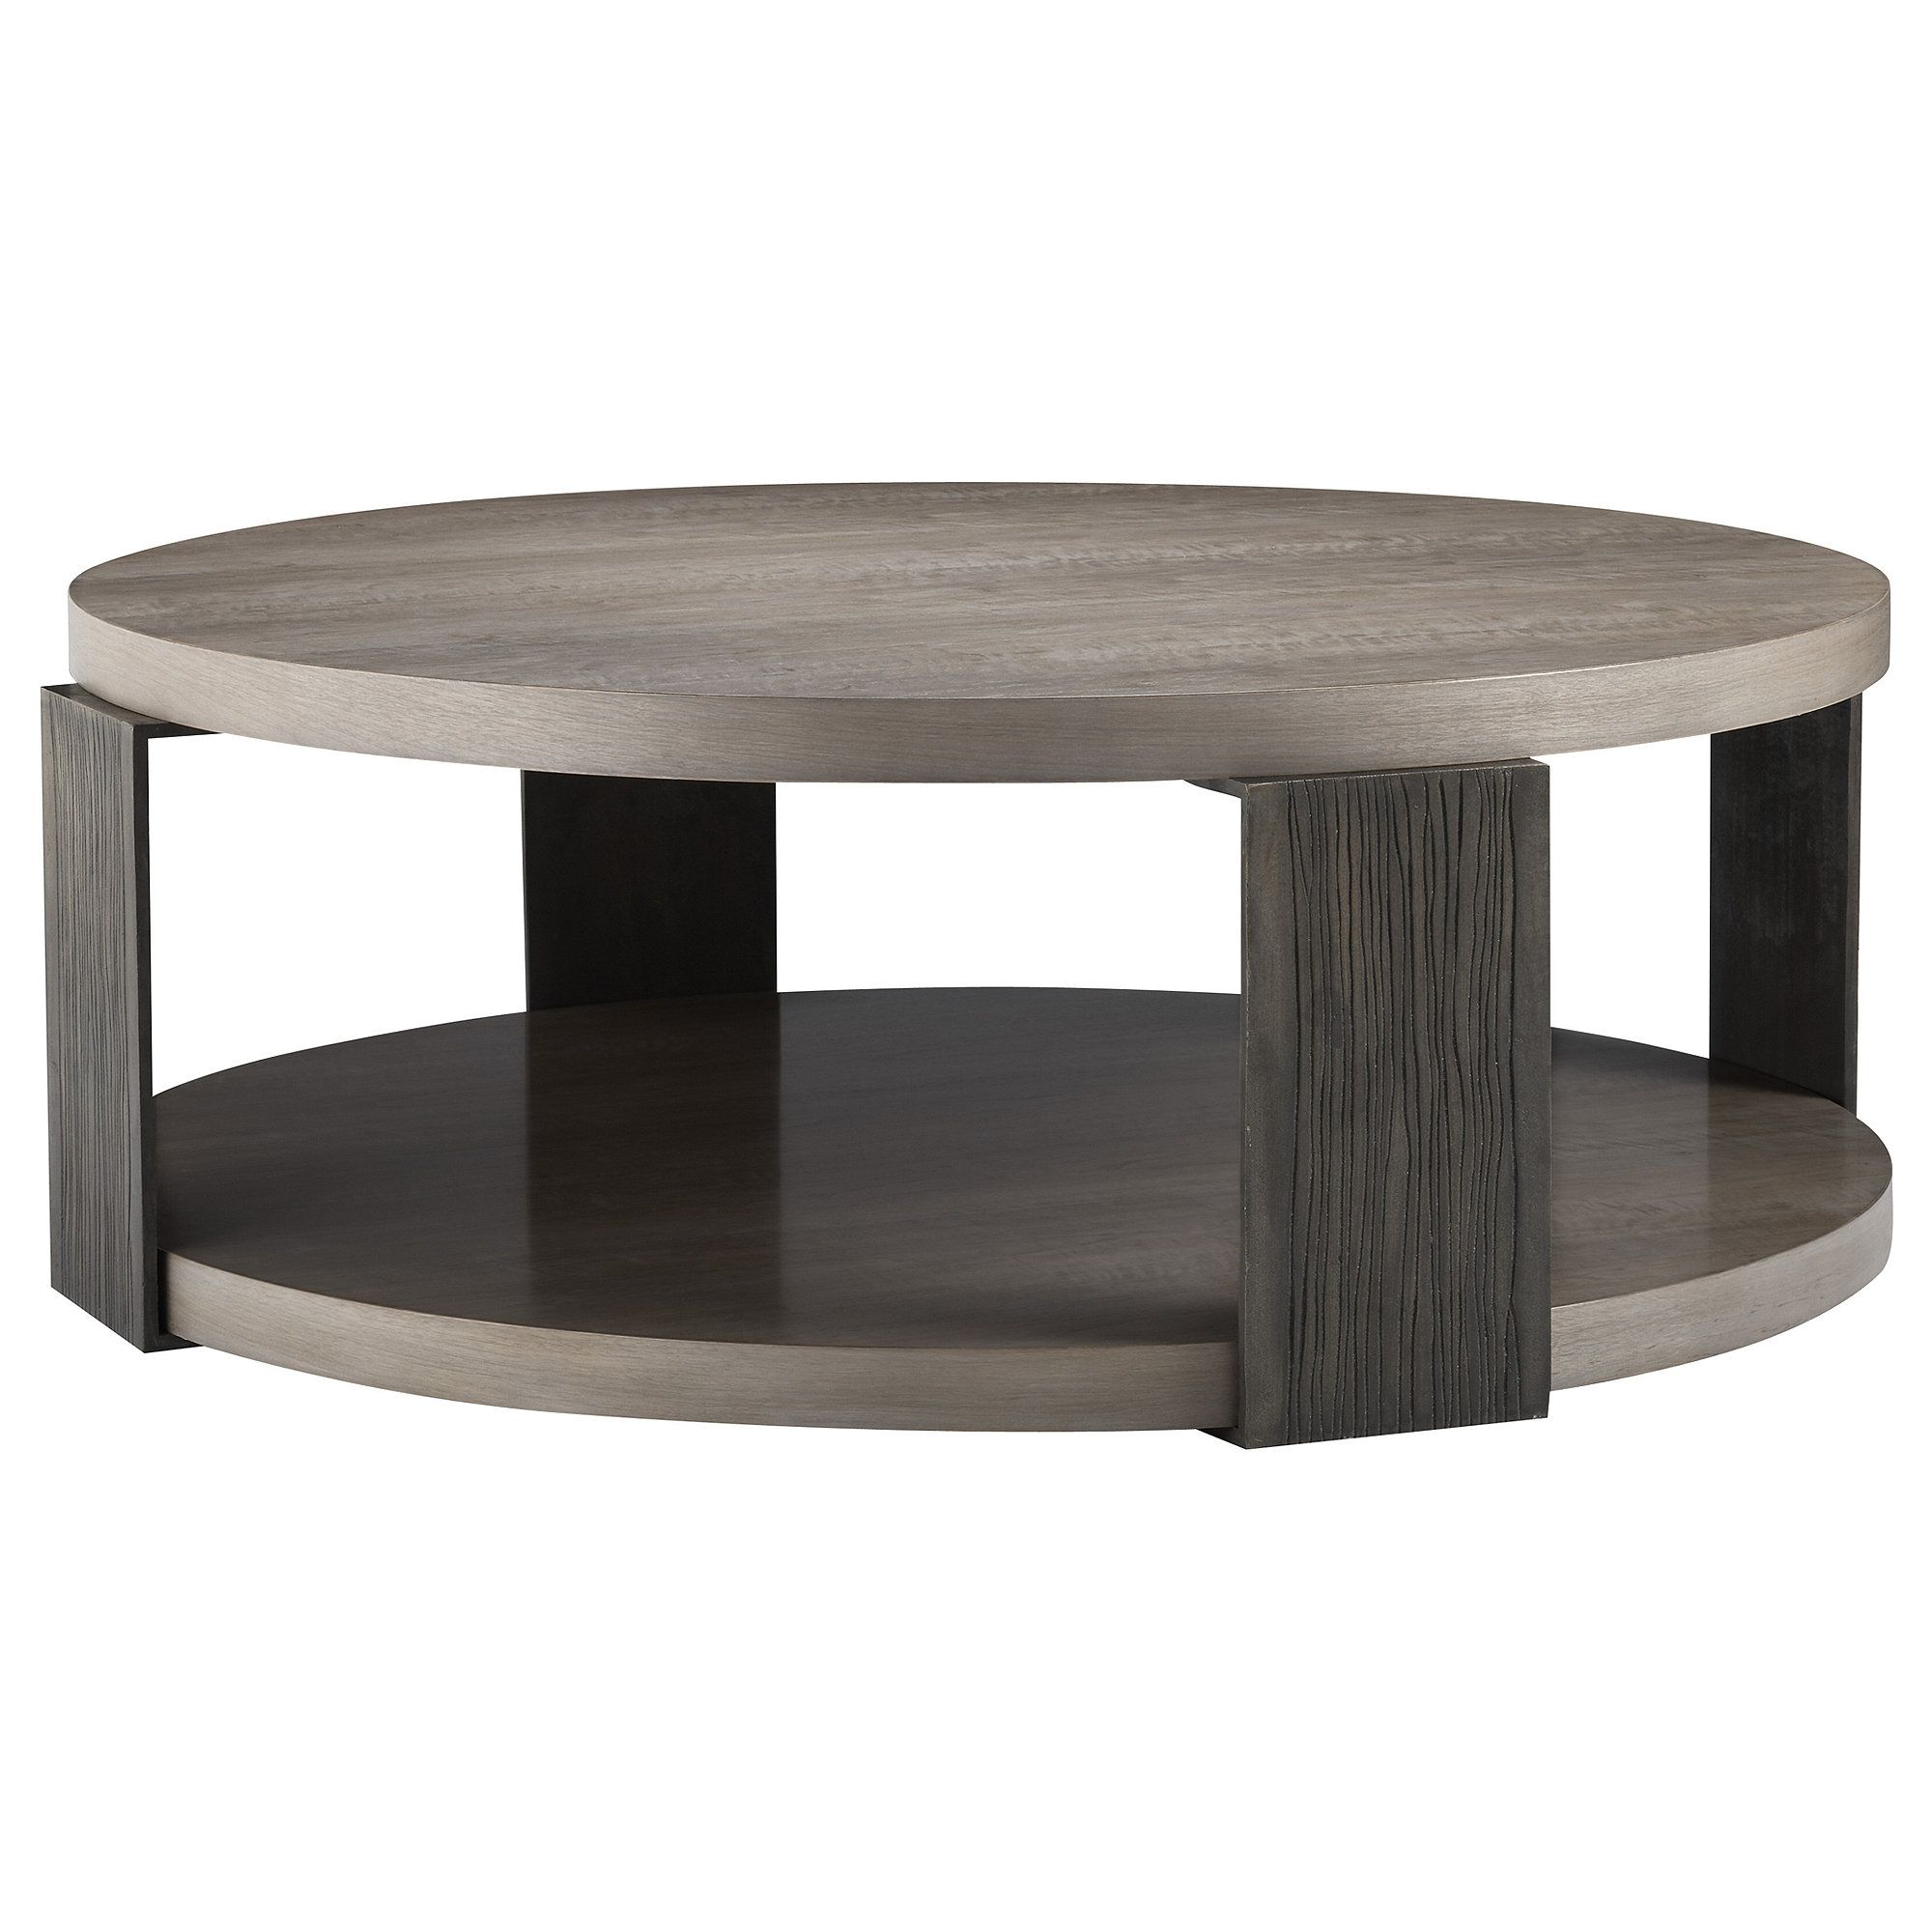 Angulo round cocktail table the laura kirar collection baker